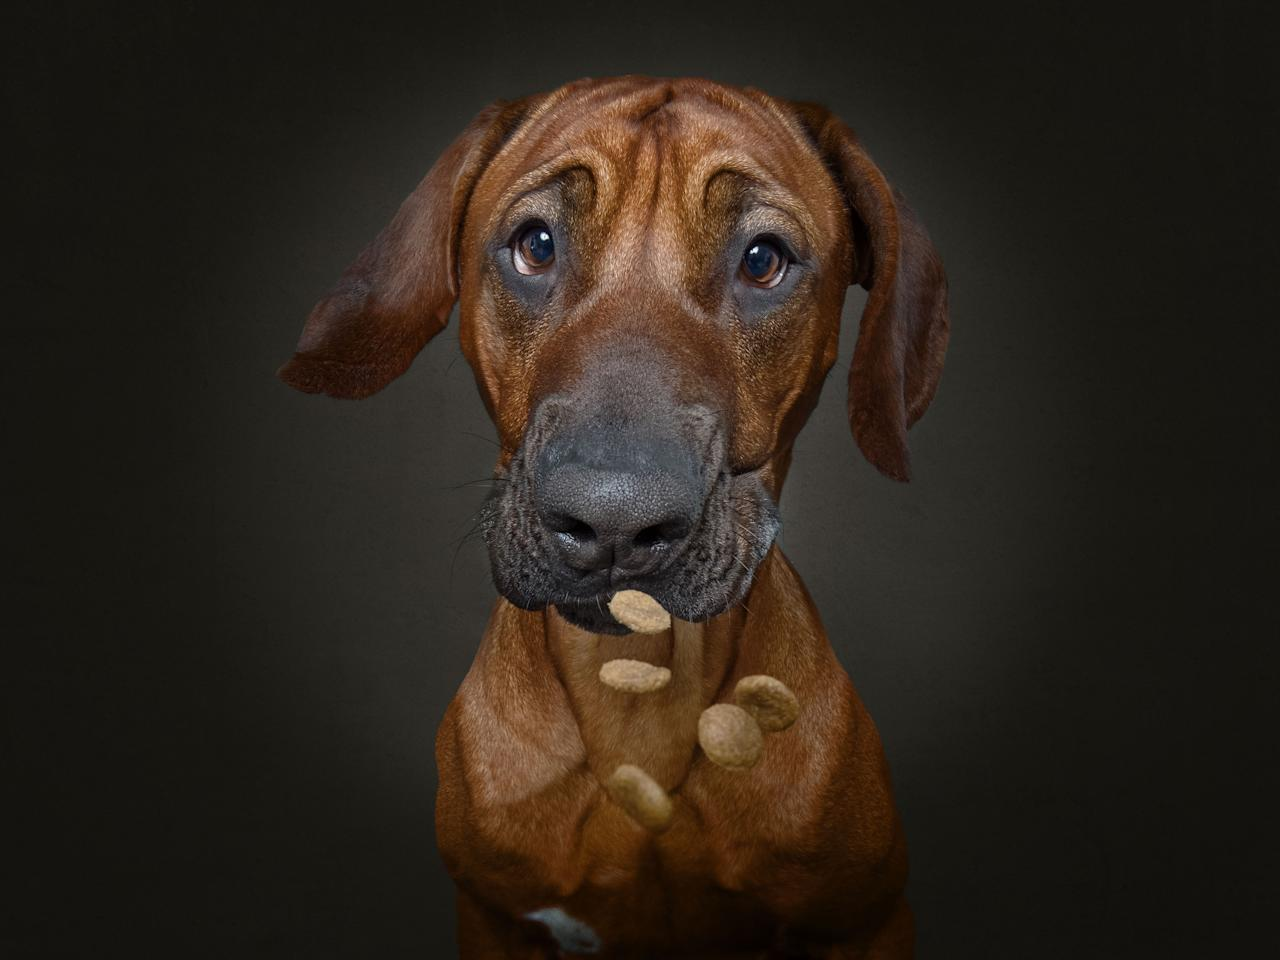 <p>Hudson the Rhodesian ridgeback. (Photo: Christian Vieler/Caters News) </p>